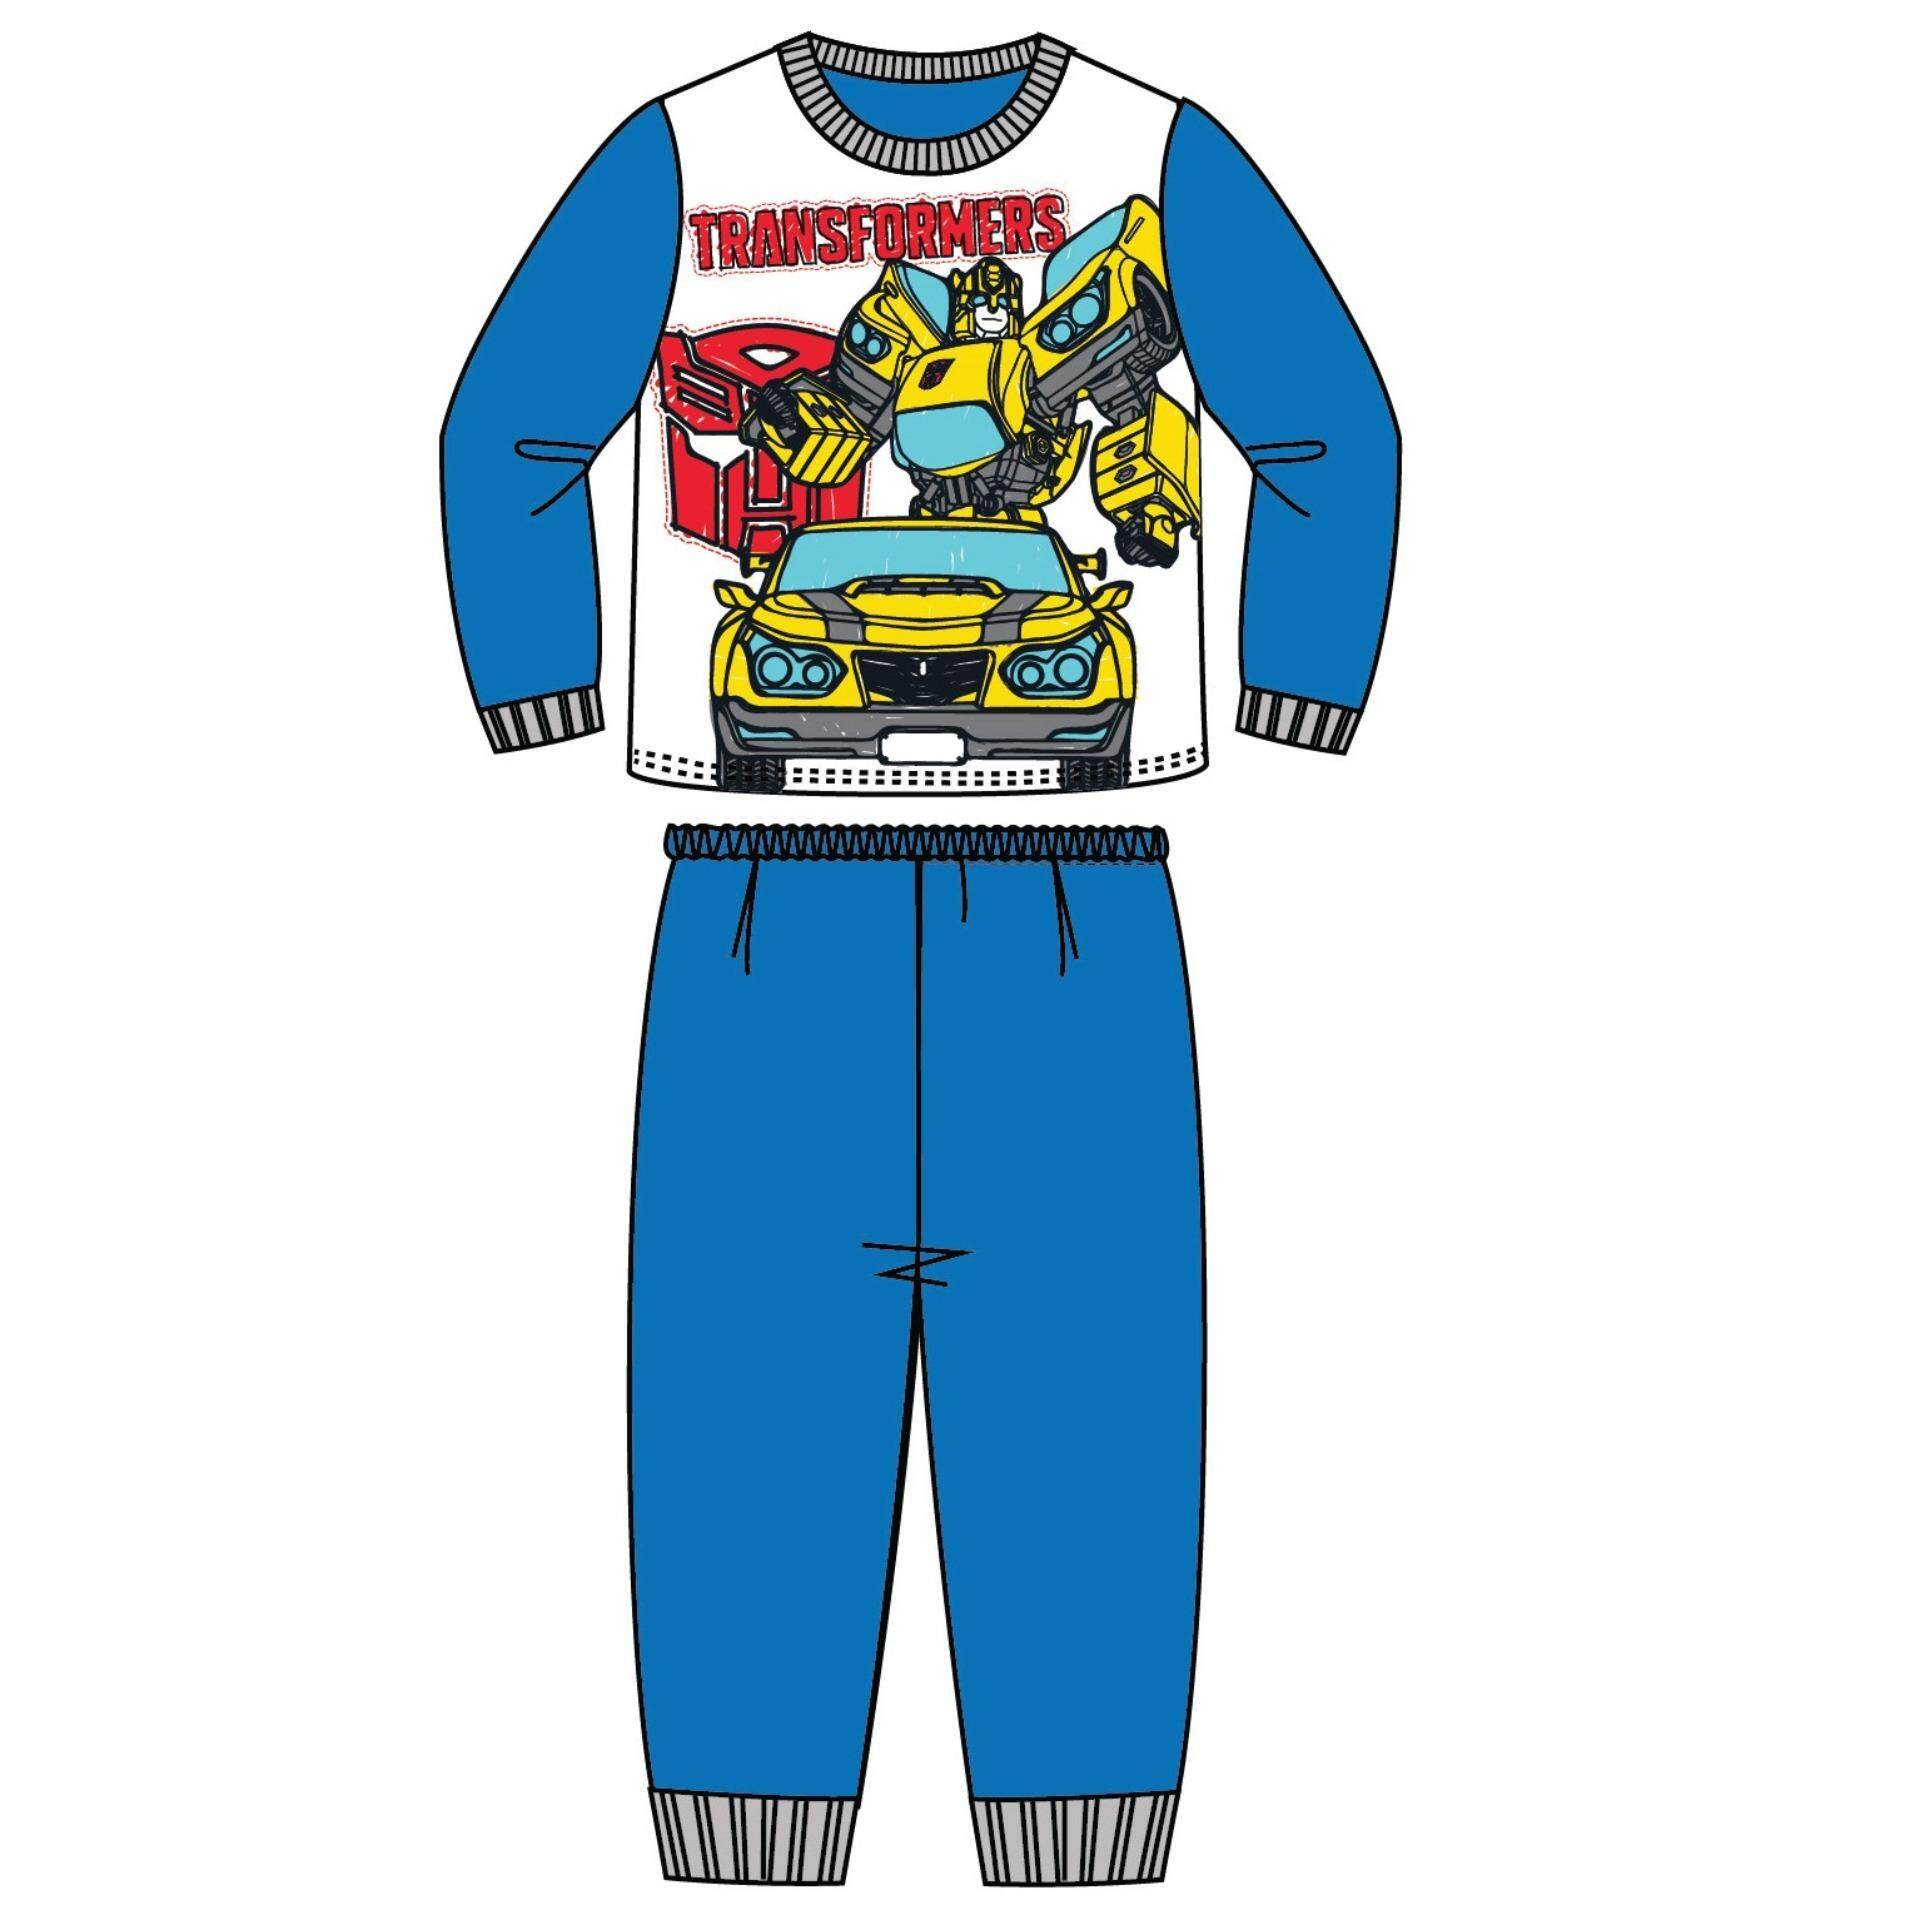 Transformers Children Kids Pajamas Homewear For Age 1yrs To 5yrs 100% Cotton - White Blue